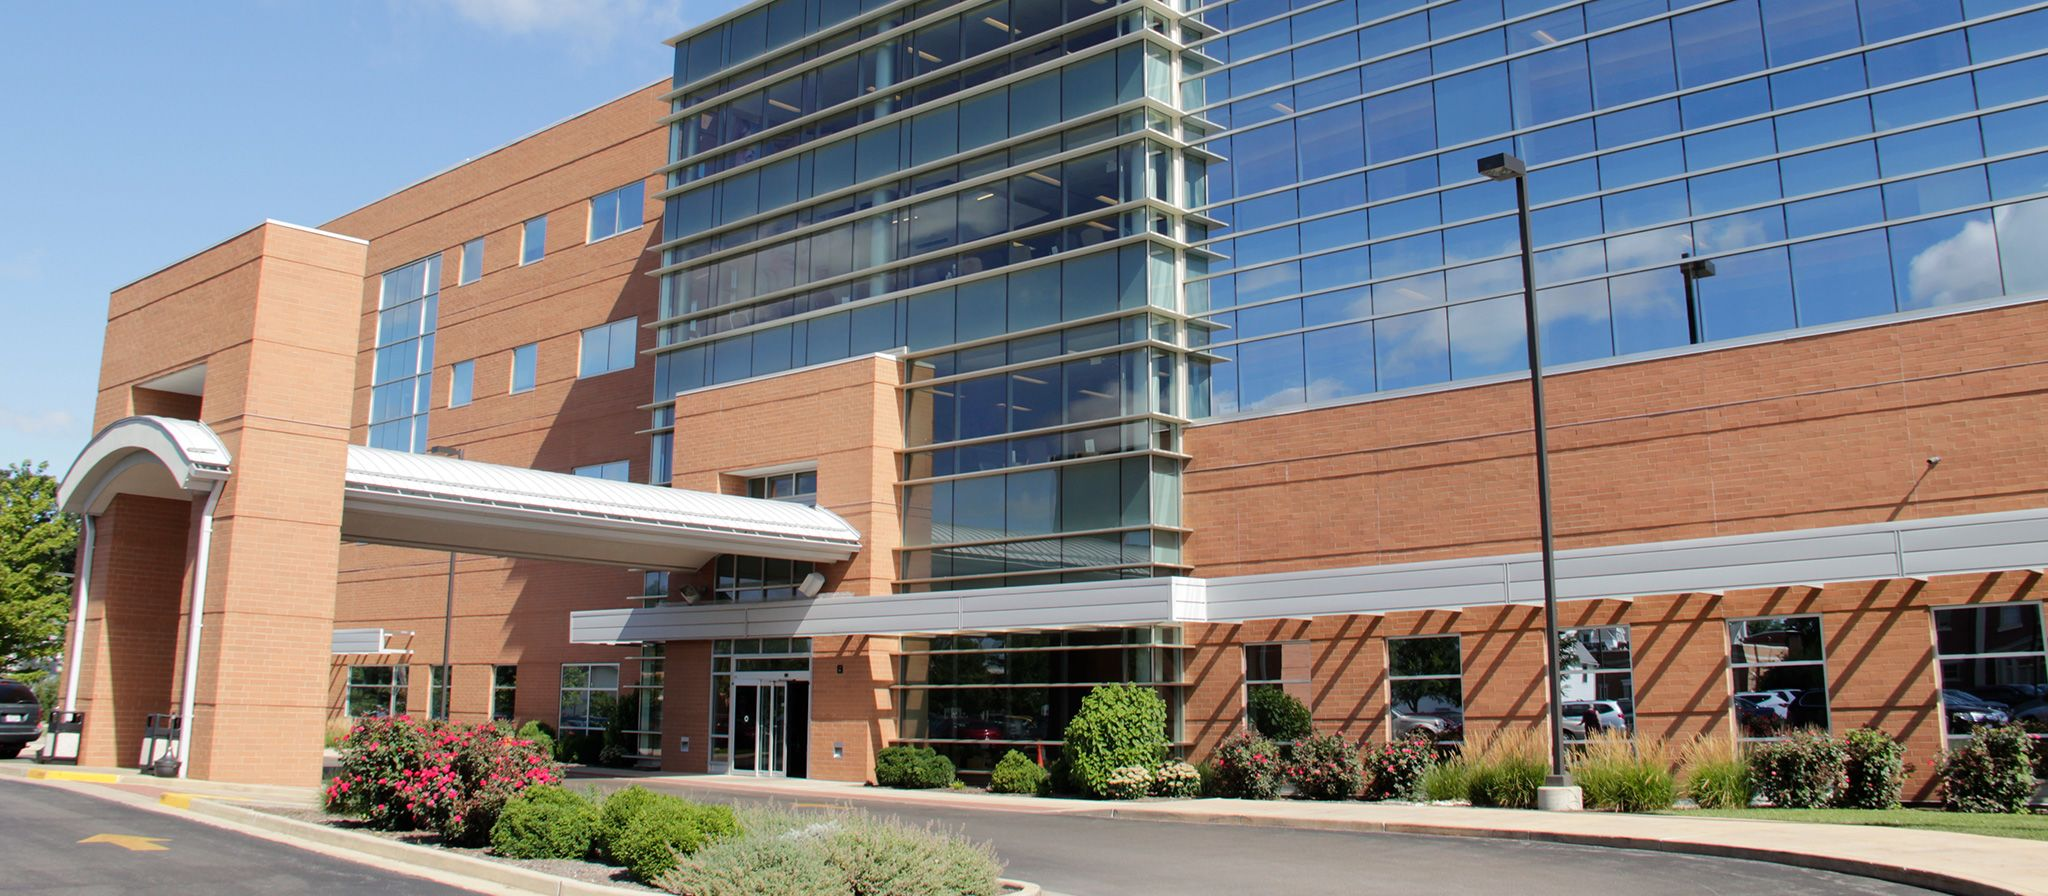 Springfield Clinic Main Campus - West Building